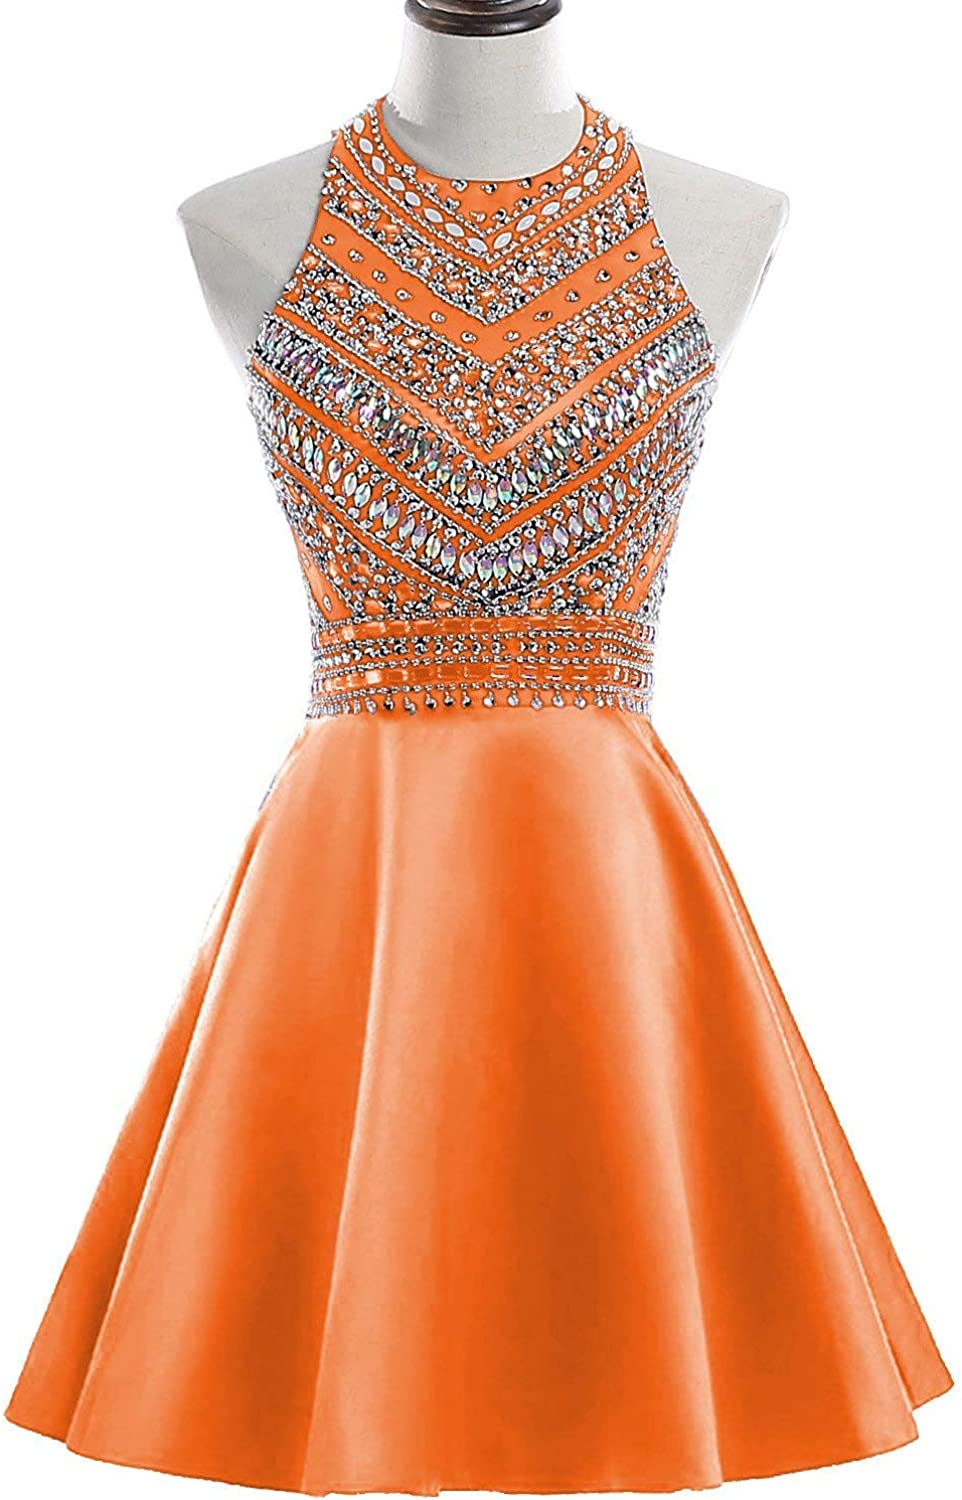 ANFF Women's Homecoming Dresses 2018 Short Beaded Bodice Formal Party Gowns